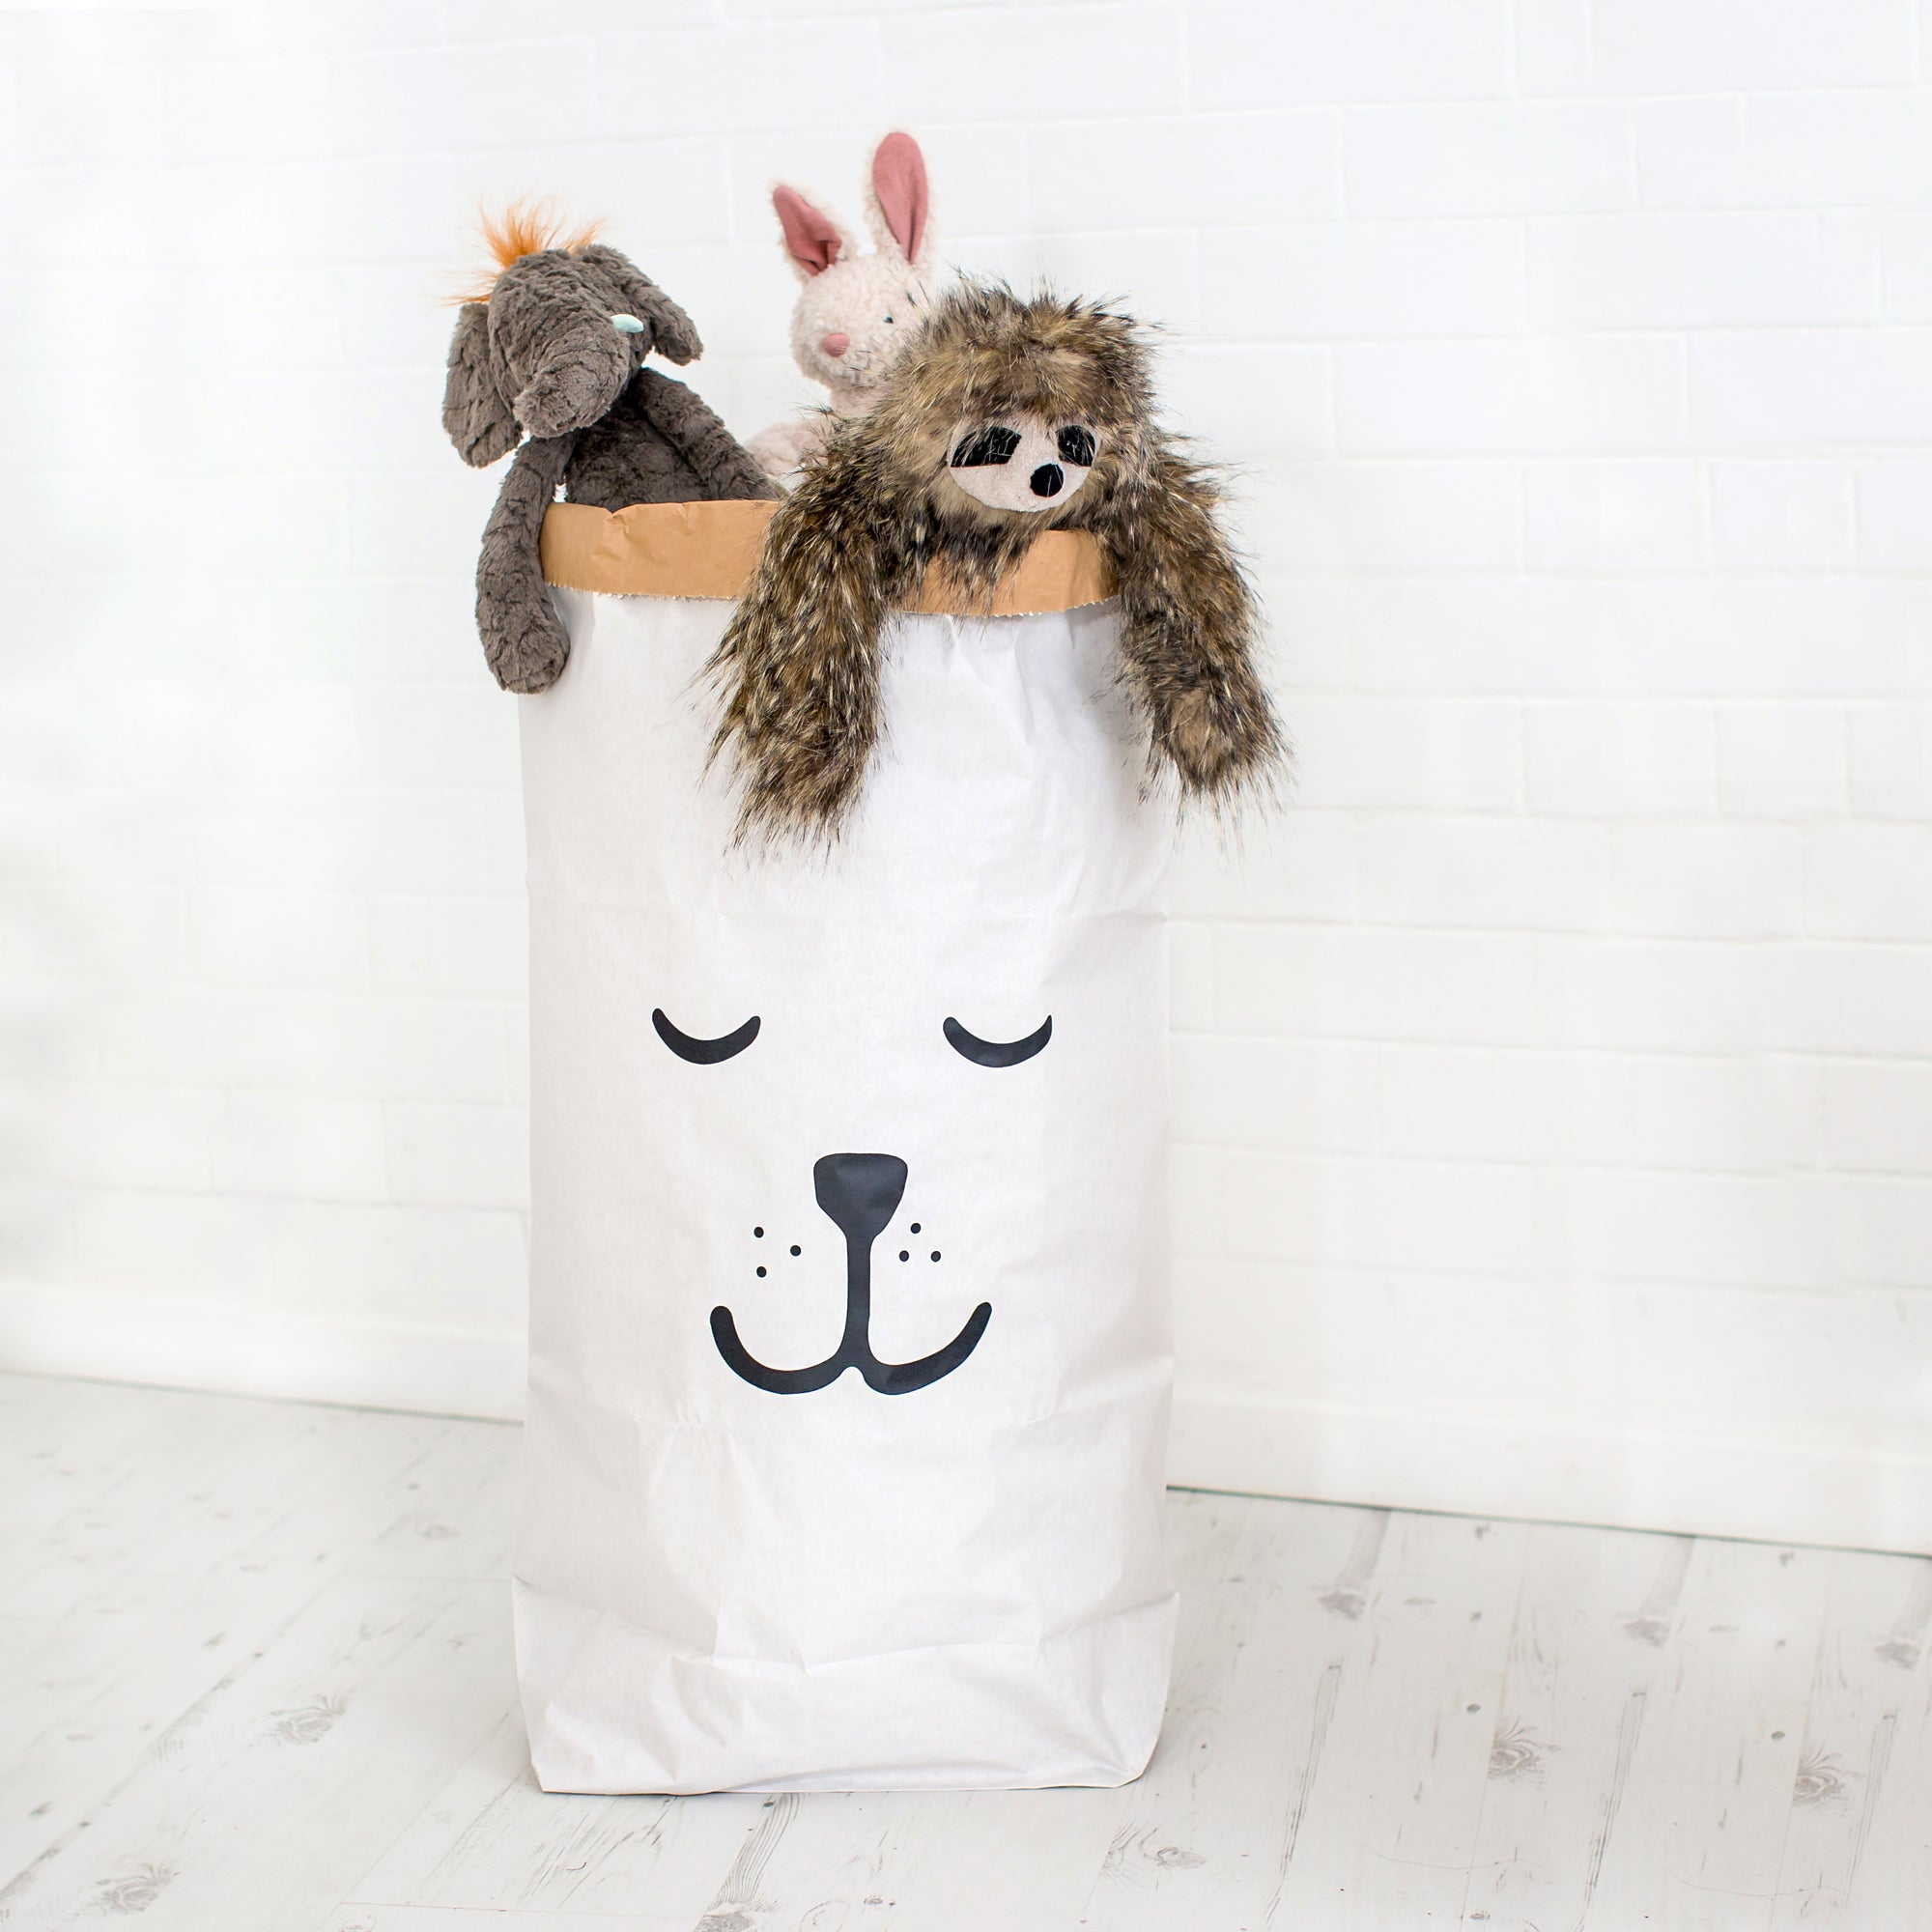 Sleeping Bear toy storage bag by Tellkiddo, available at Bobby Rabbit.